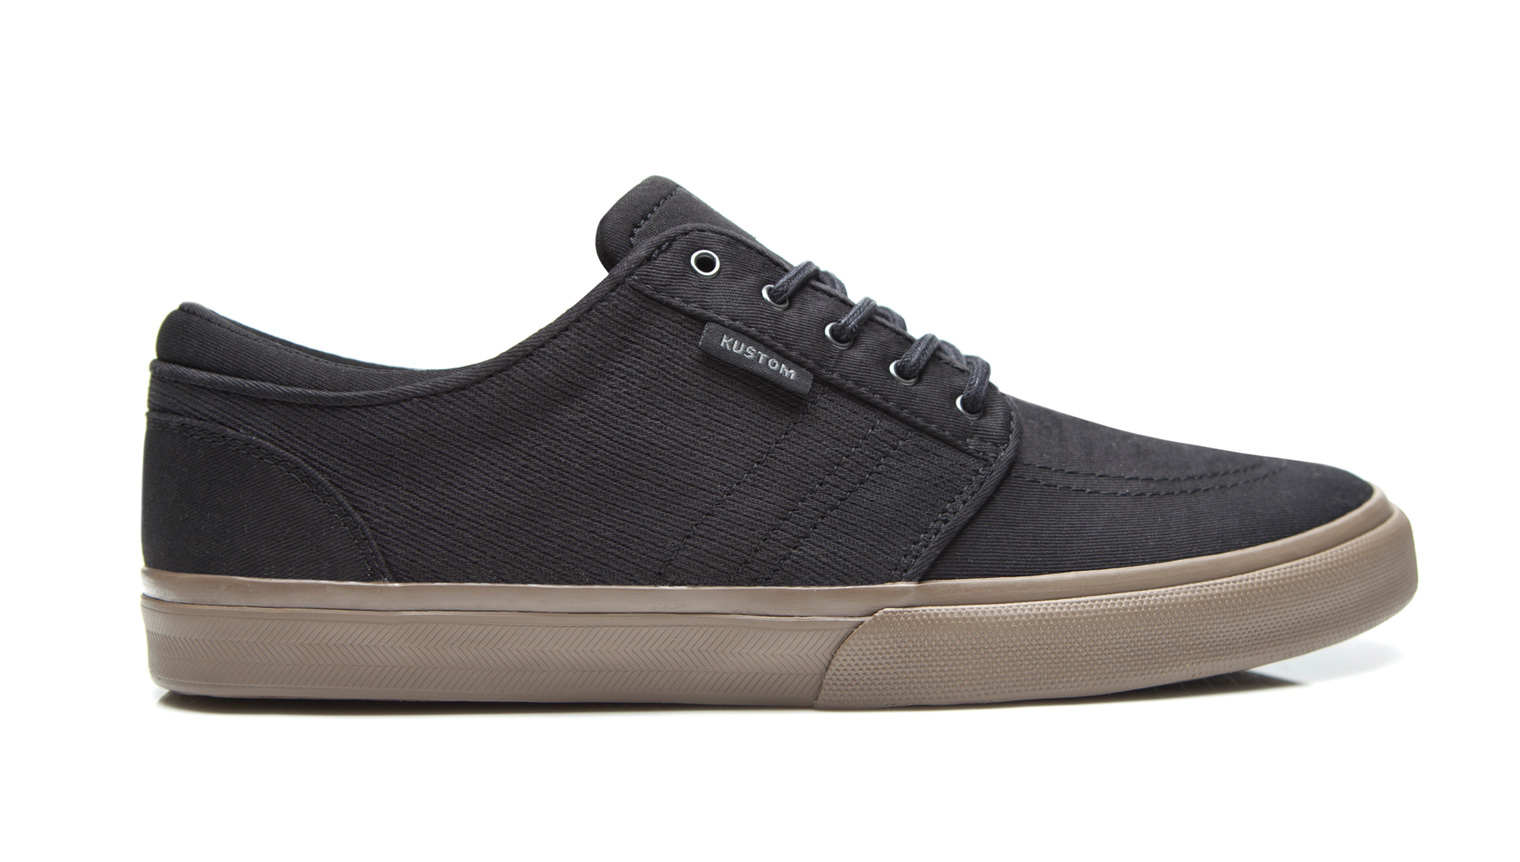 KUSTOM SHOES REMARK SHOE / BLACK TWILL